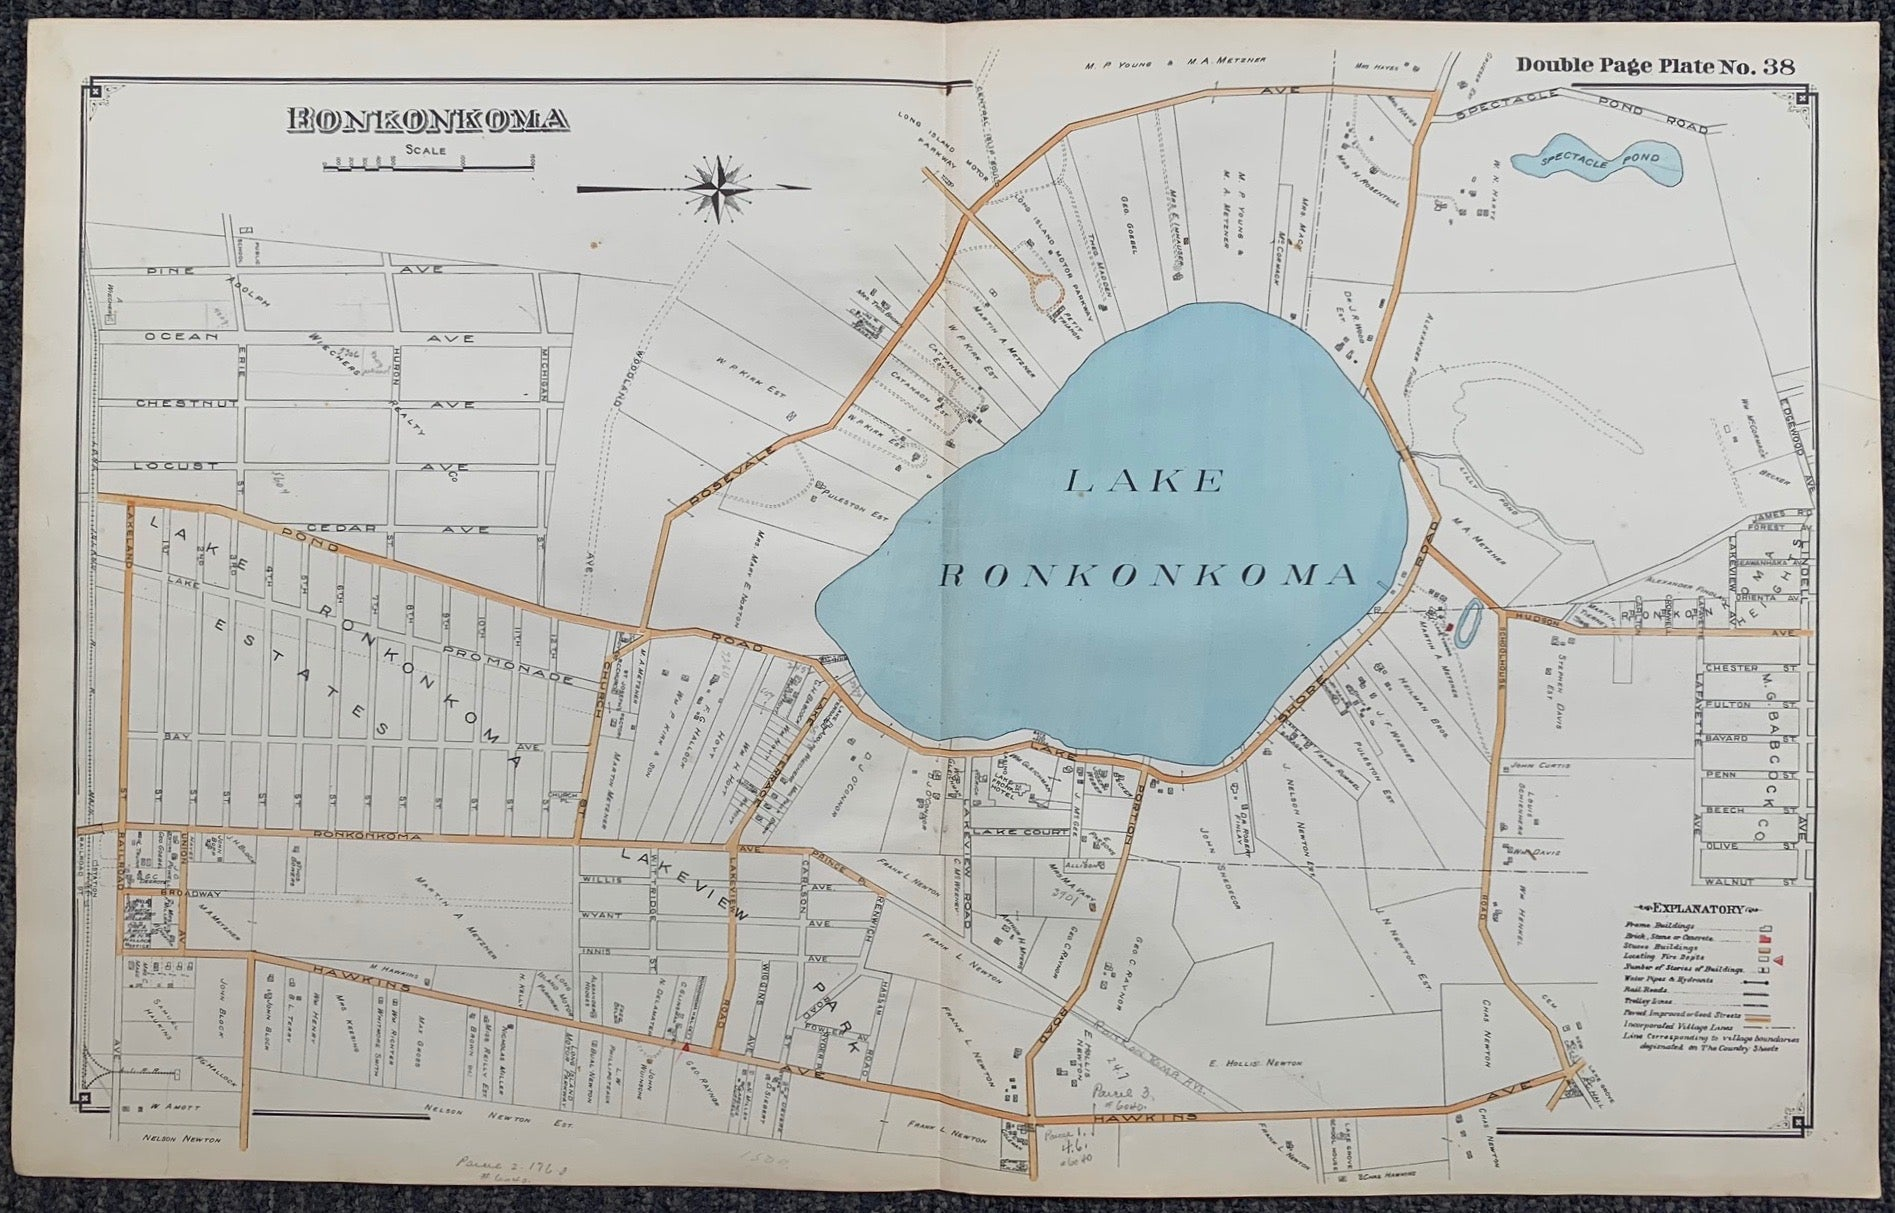 Long Island Index Map No.2 - Plate 38 Lake Ronkonkoma